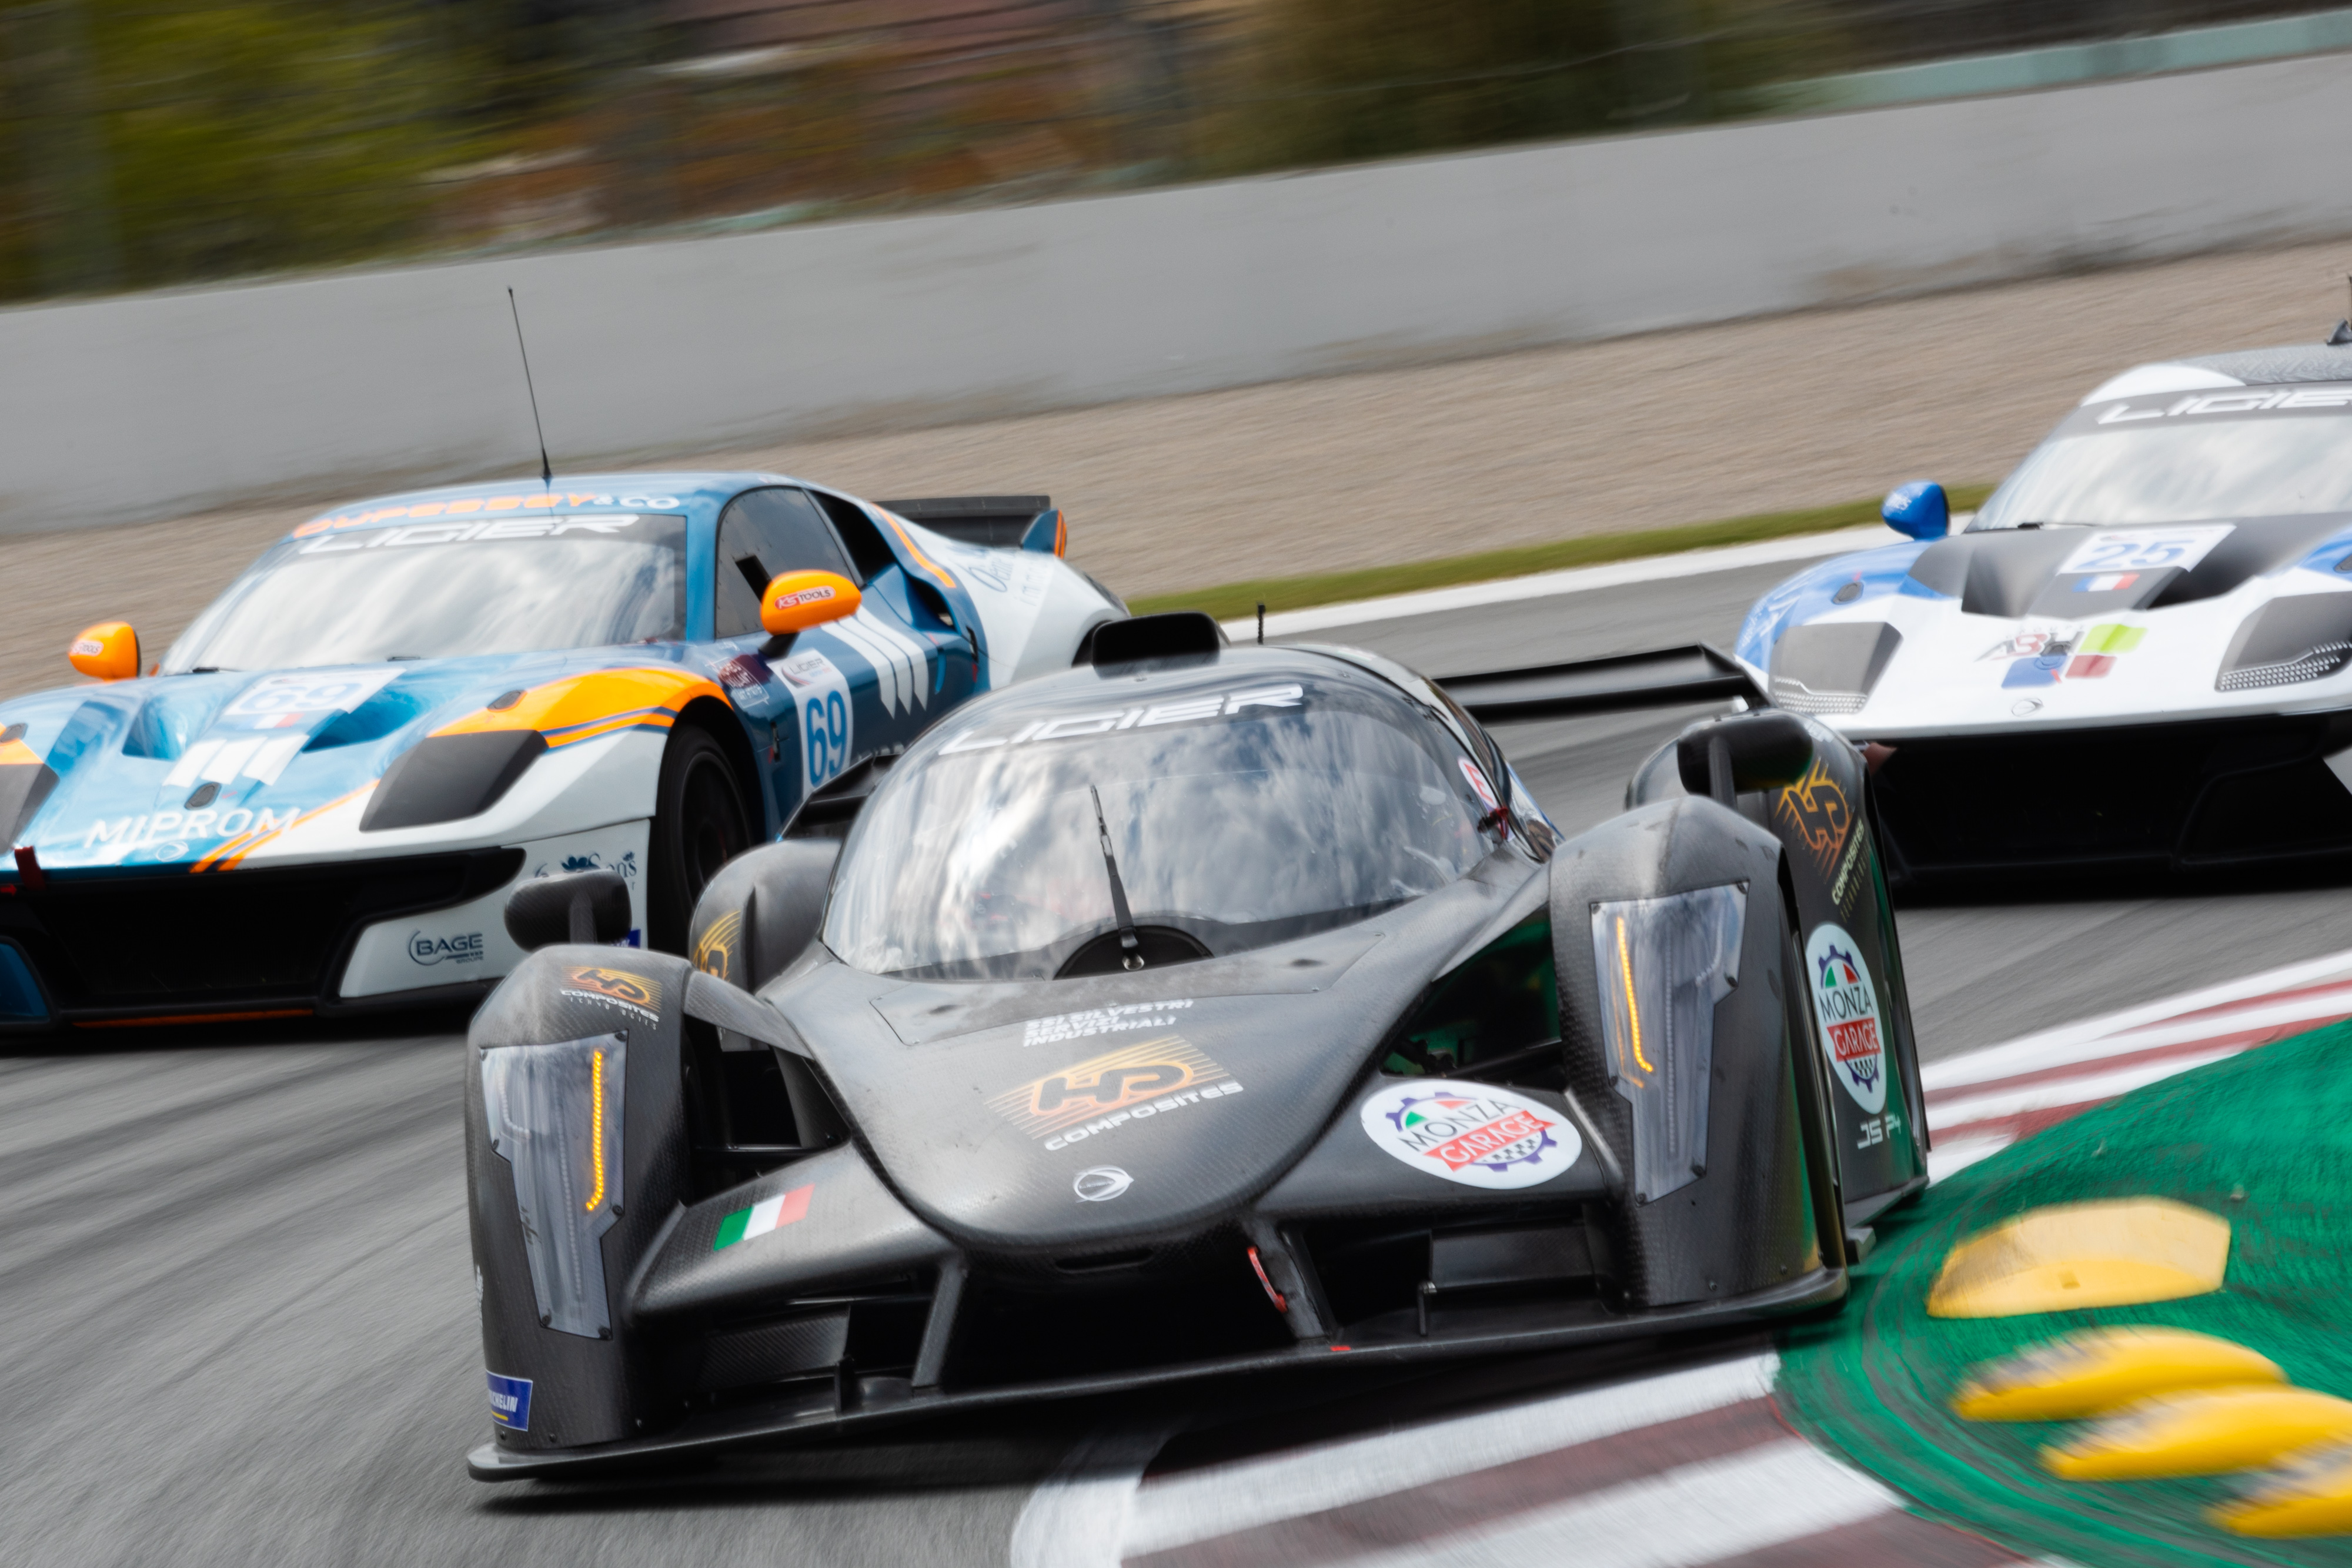 23 Faccioni Jacopo (ita), Cicognani Alessandro (ita), HP Racing by Monzagarage, action , during the Heat 1 - Barcelona of the 2021 Ligier European Series, from April 15 to 17, 2021 on the Circuit de Barcelona-Catalunya, in Montmelo, near Barcelona, Spain - Photo Frédéric Le Floc'h / DPPI